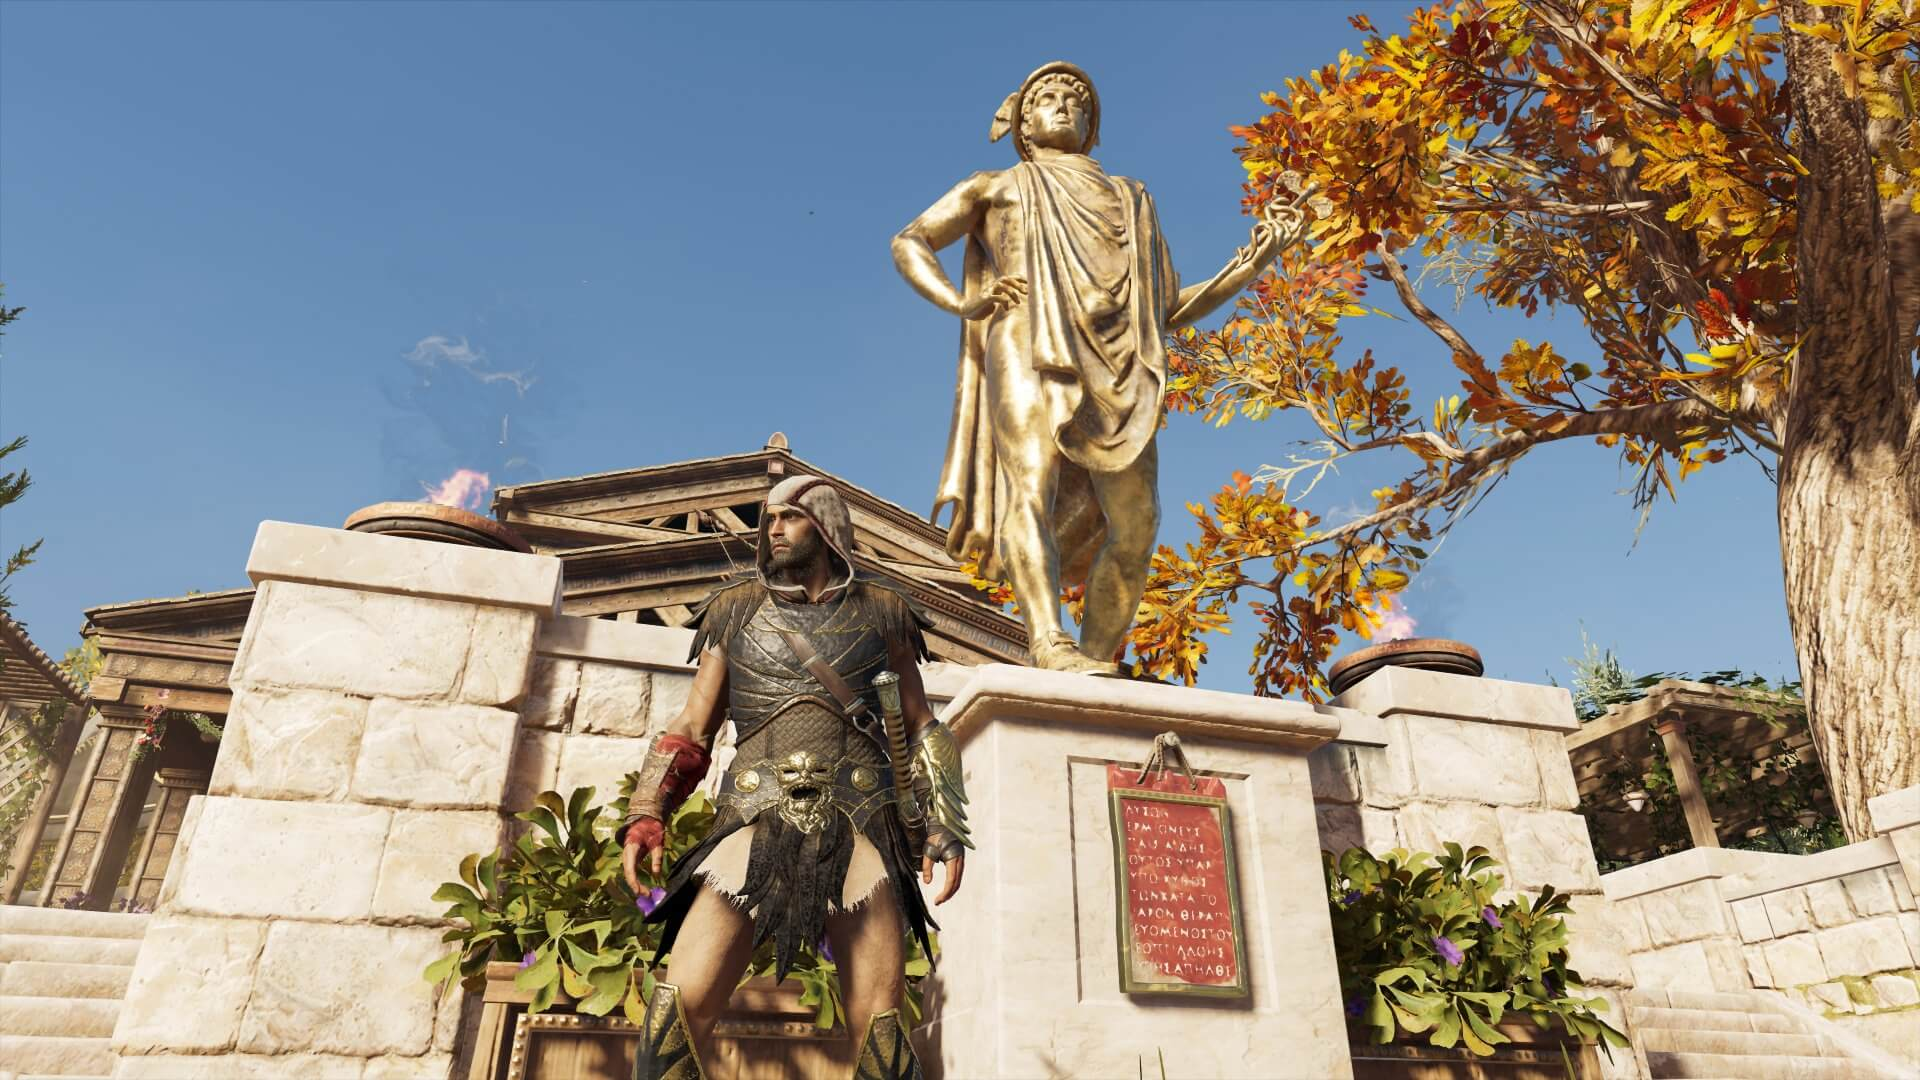 Assassins Creed® Odyssey  60 - Assassin's Creed Odyssey: confira o guia de dicas e truques do game